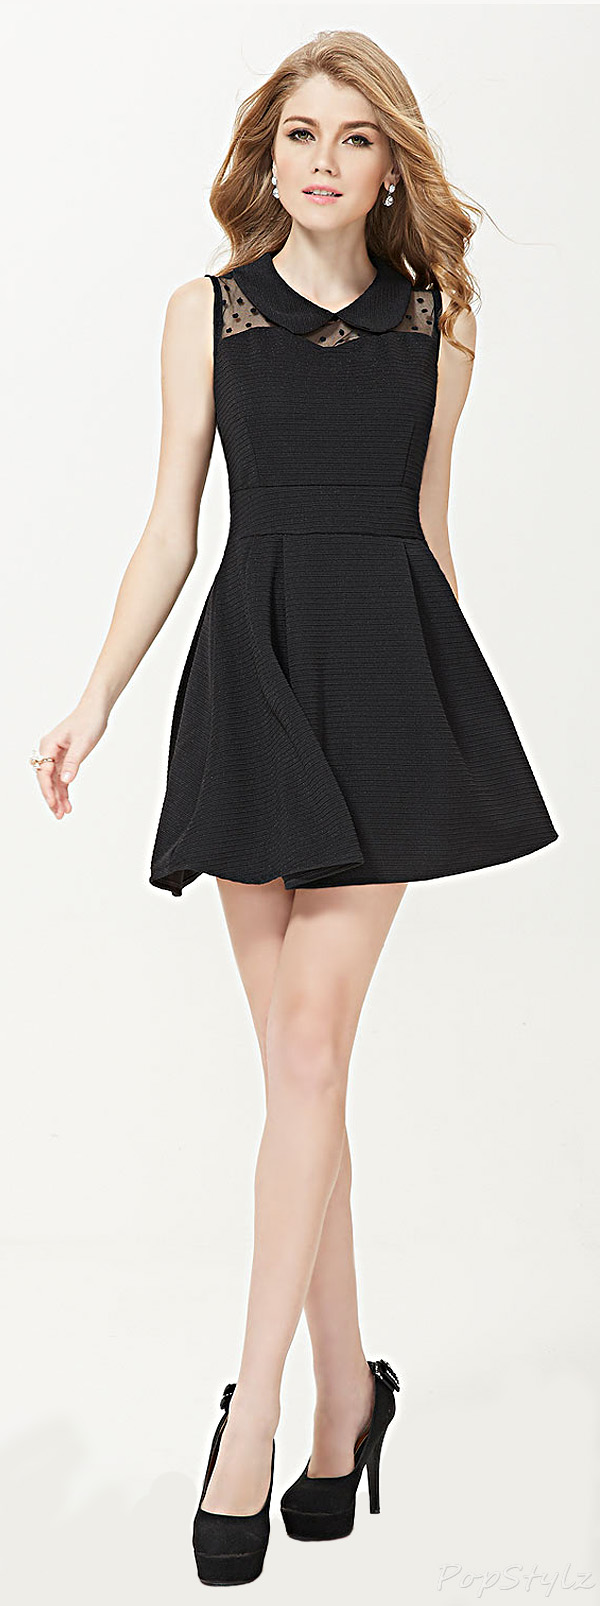 Alisa Pan 05128 Sleeveless Short Casual Skater Dress